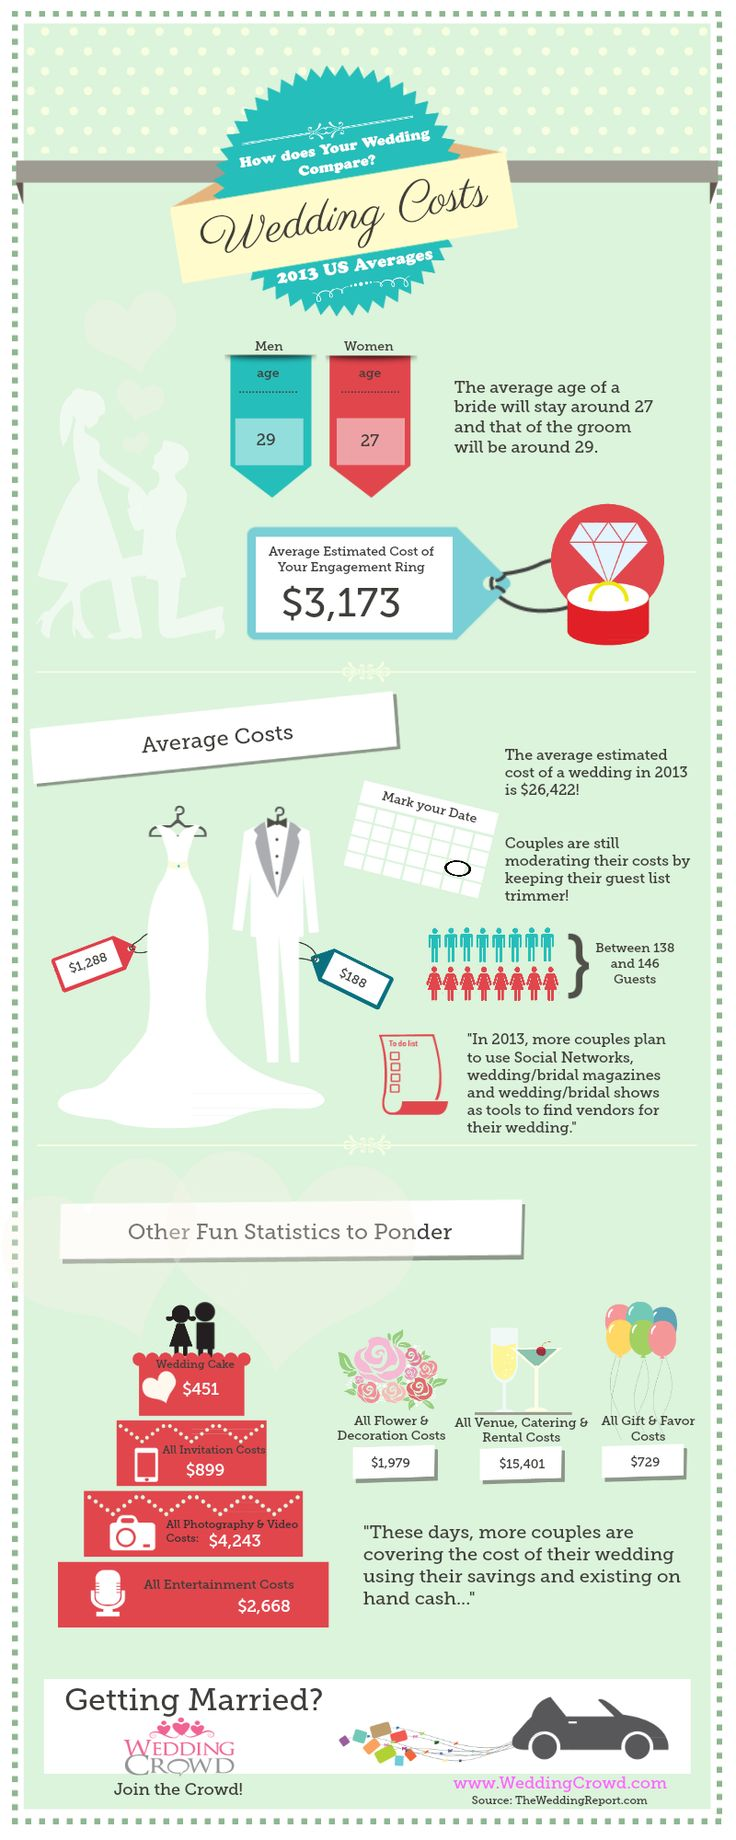 Best 25 average wedding costs ideas on pinterest wedding costs this fun infographic from weddingcrowd sheds some lights on the average wedding costs and ways couples ombrellifo Image collections